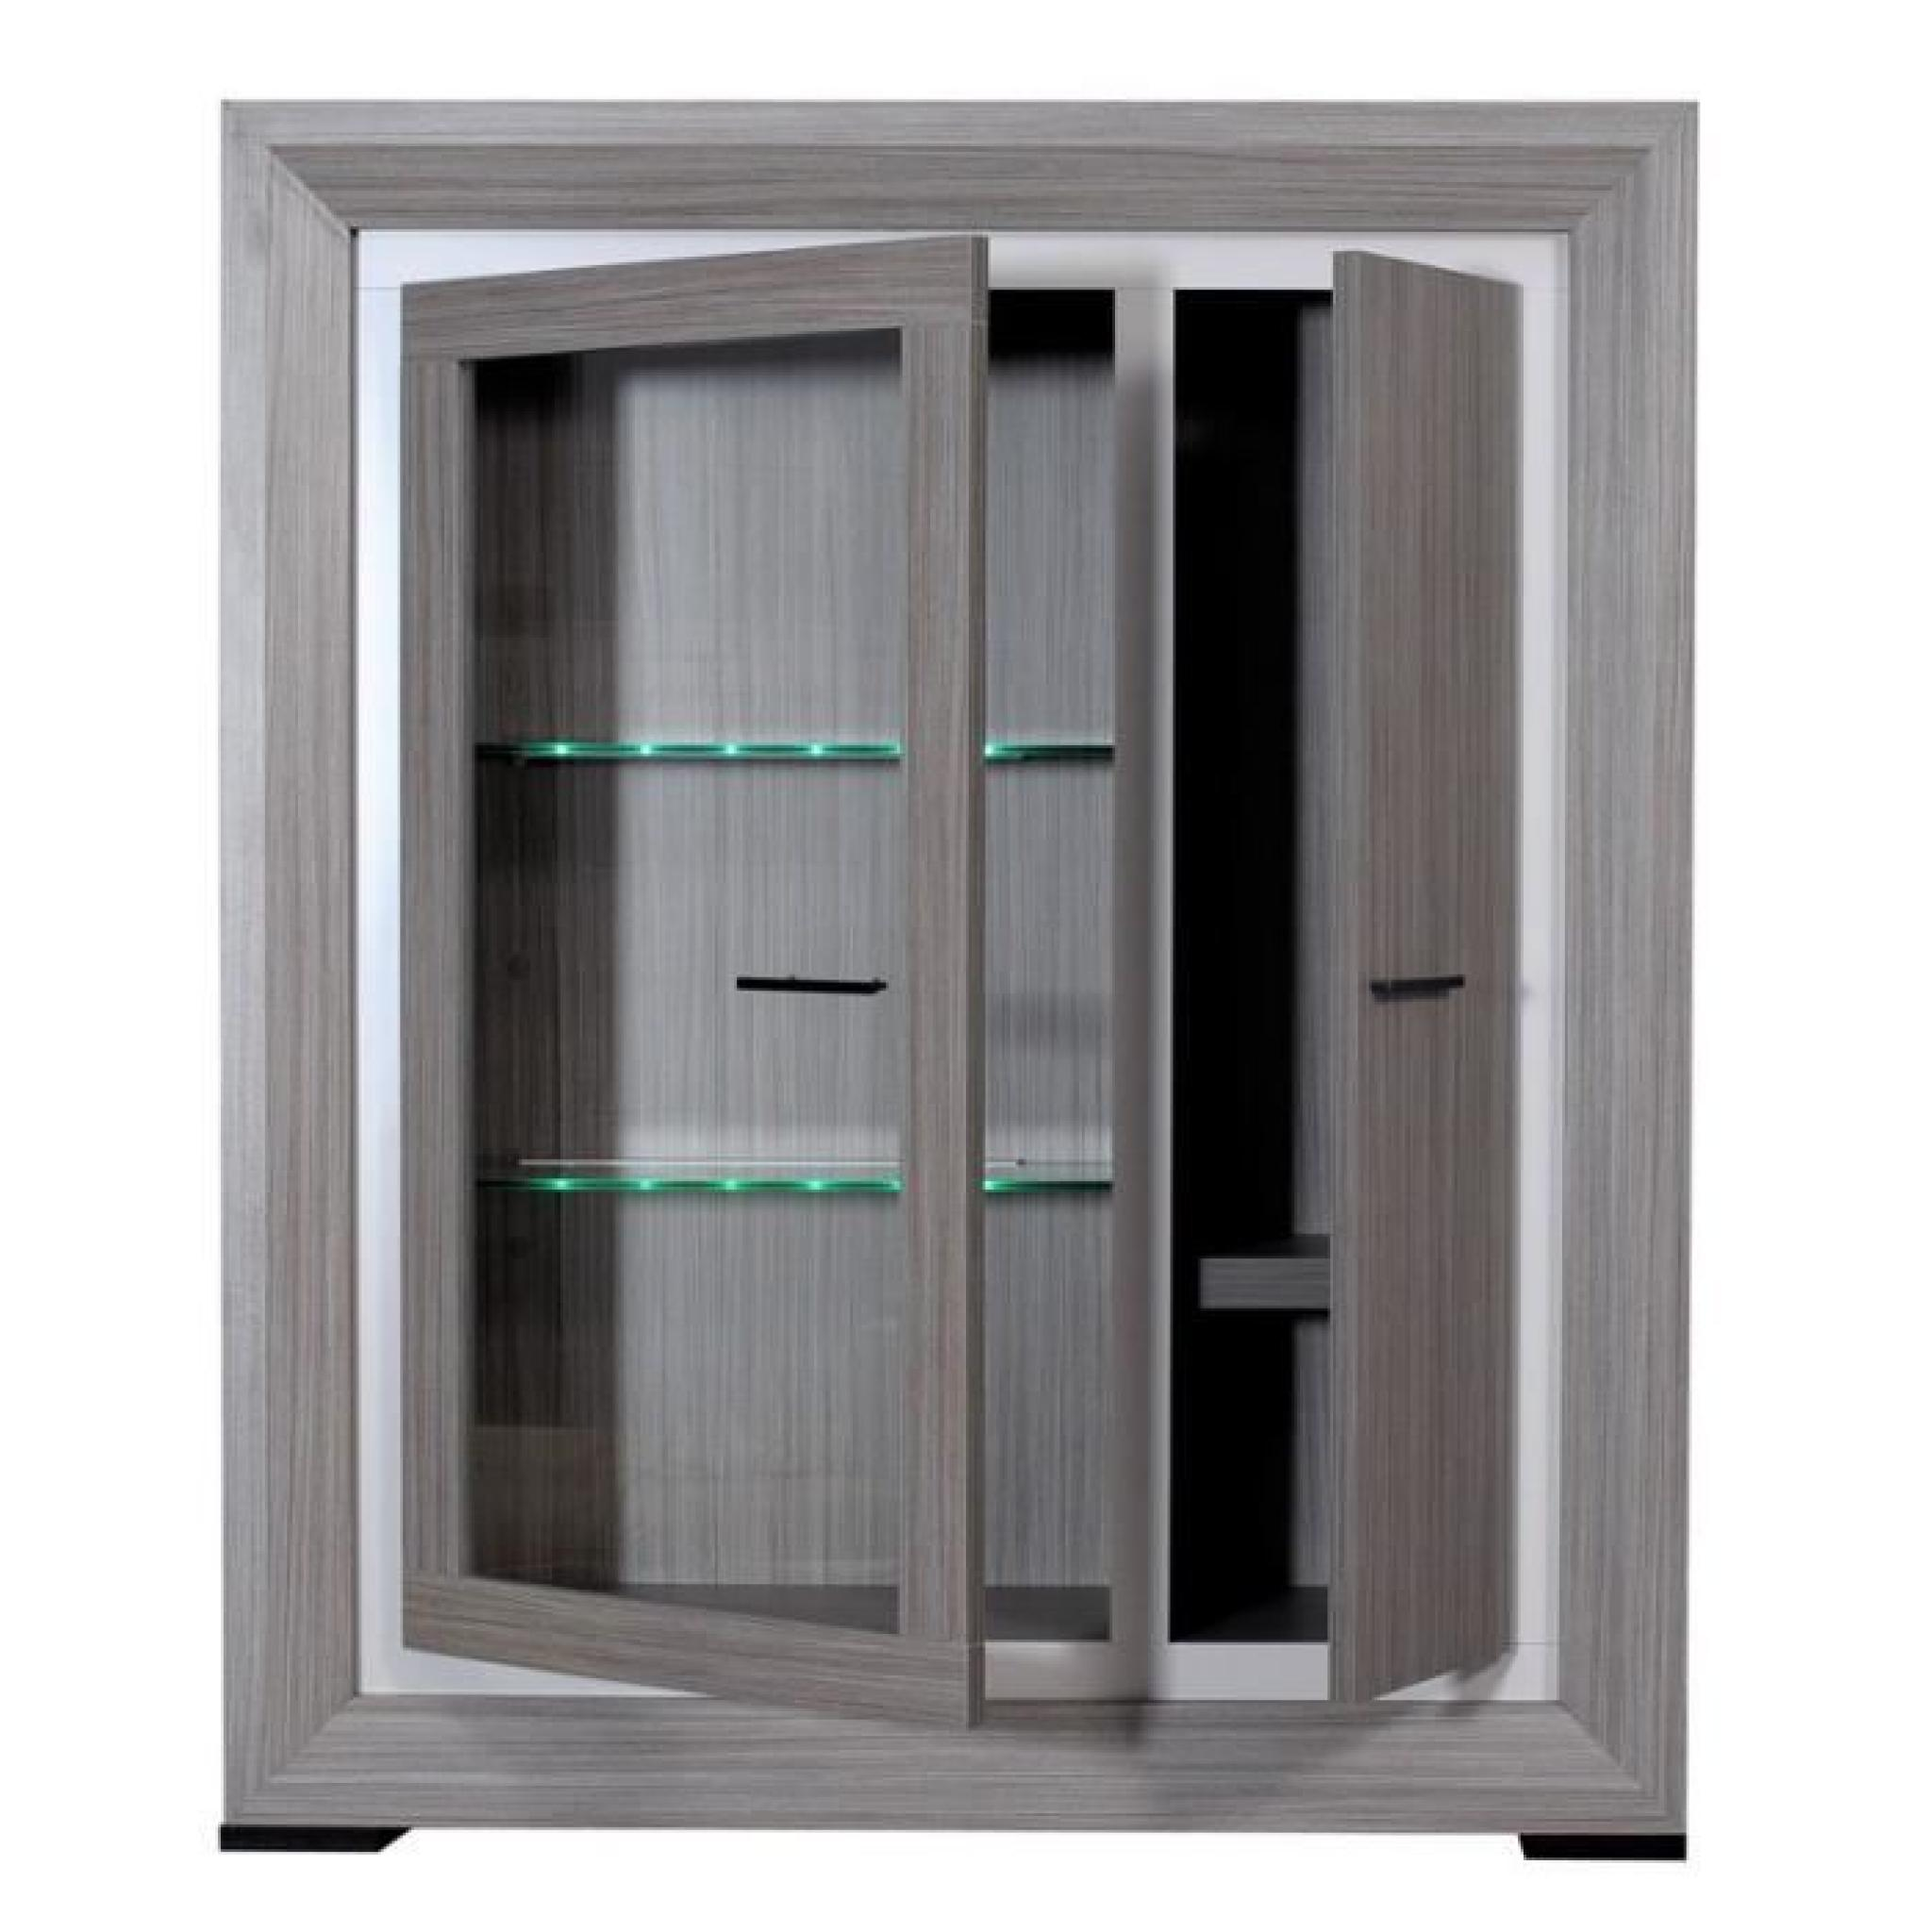 armoire vitrine de salon teck cendr alyne achat vente. Black Bedroom Furniture Sets. Home Design Ideas